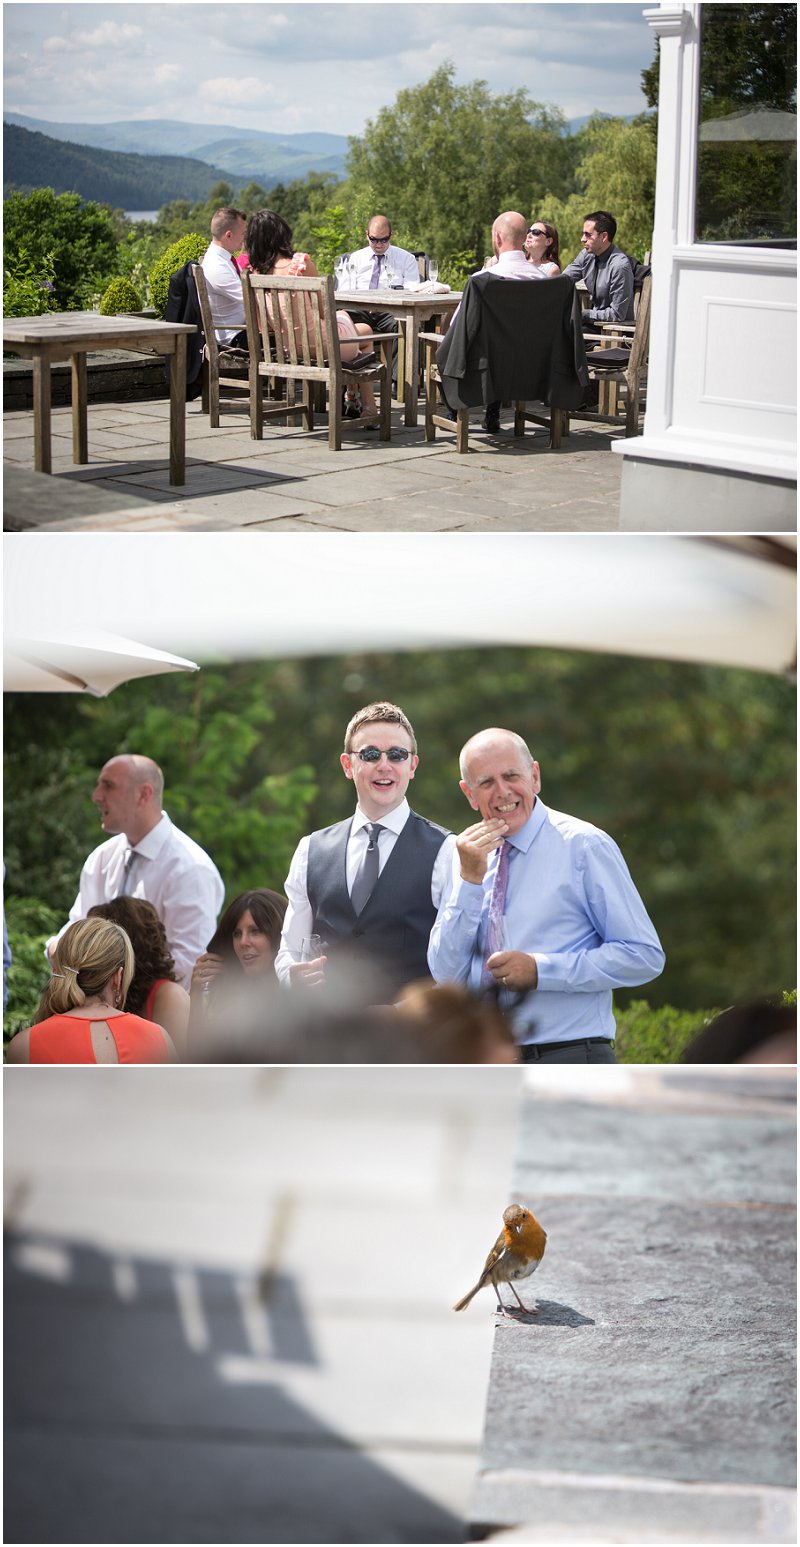 A wedding at Linthwaite House Grounds Windermere Photographer